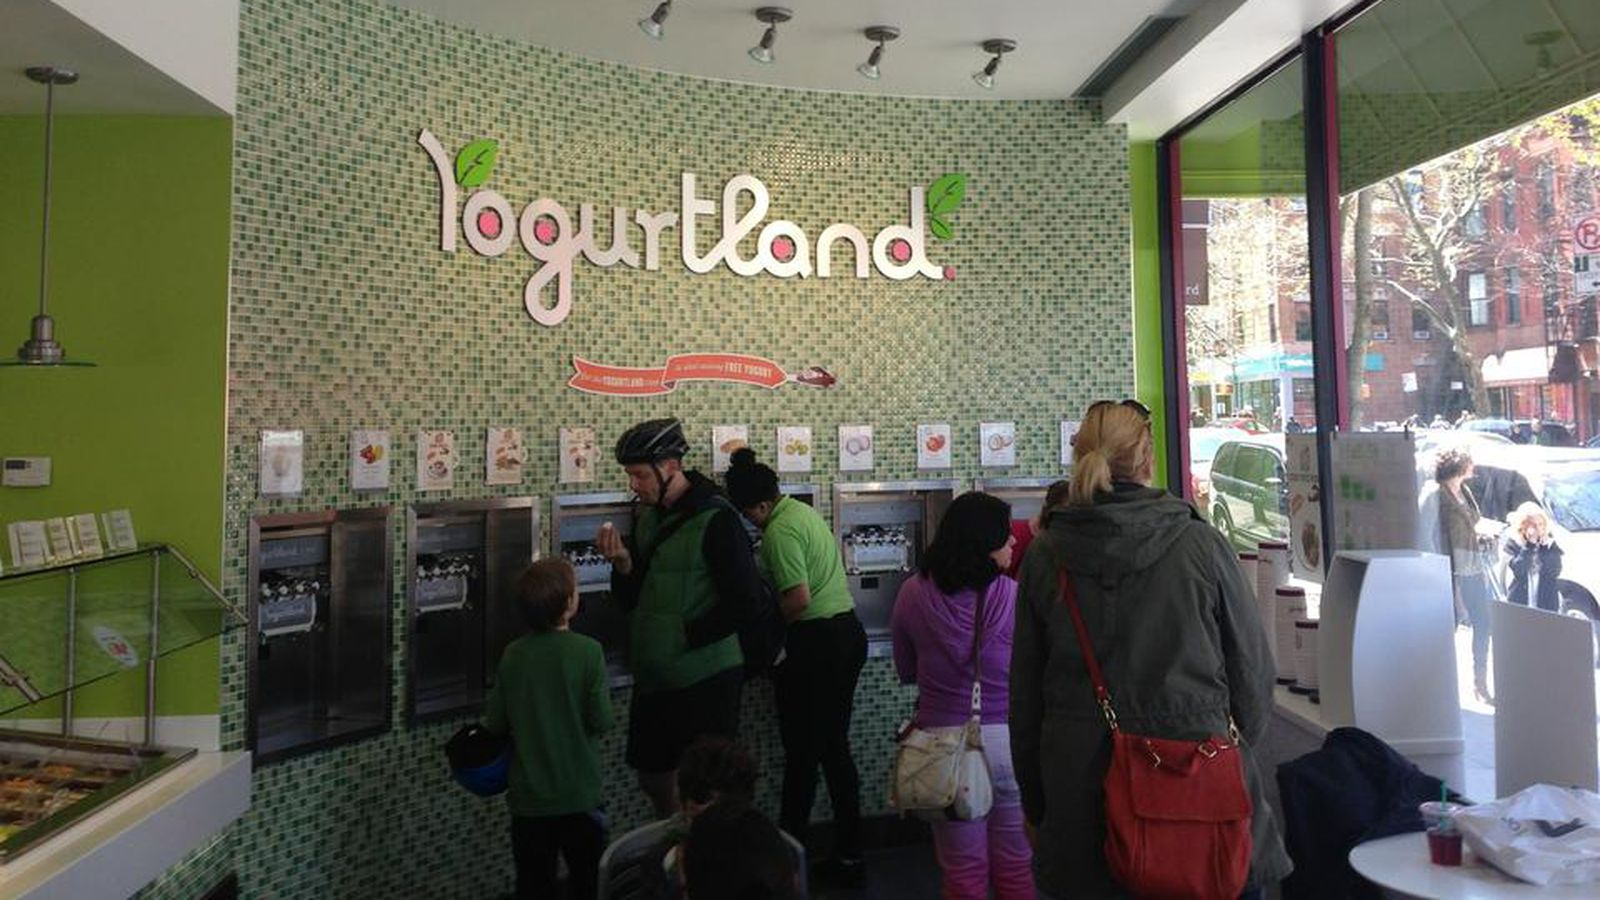 Yogurtland And 16 Handles Shutter Fao Schwartz To Close